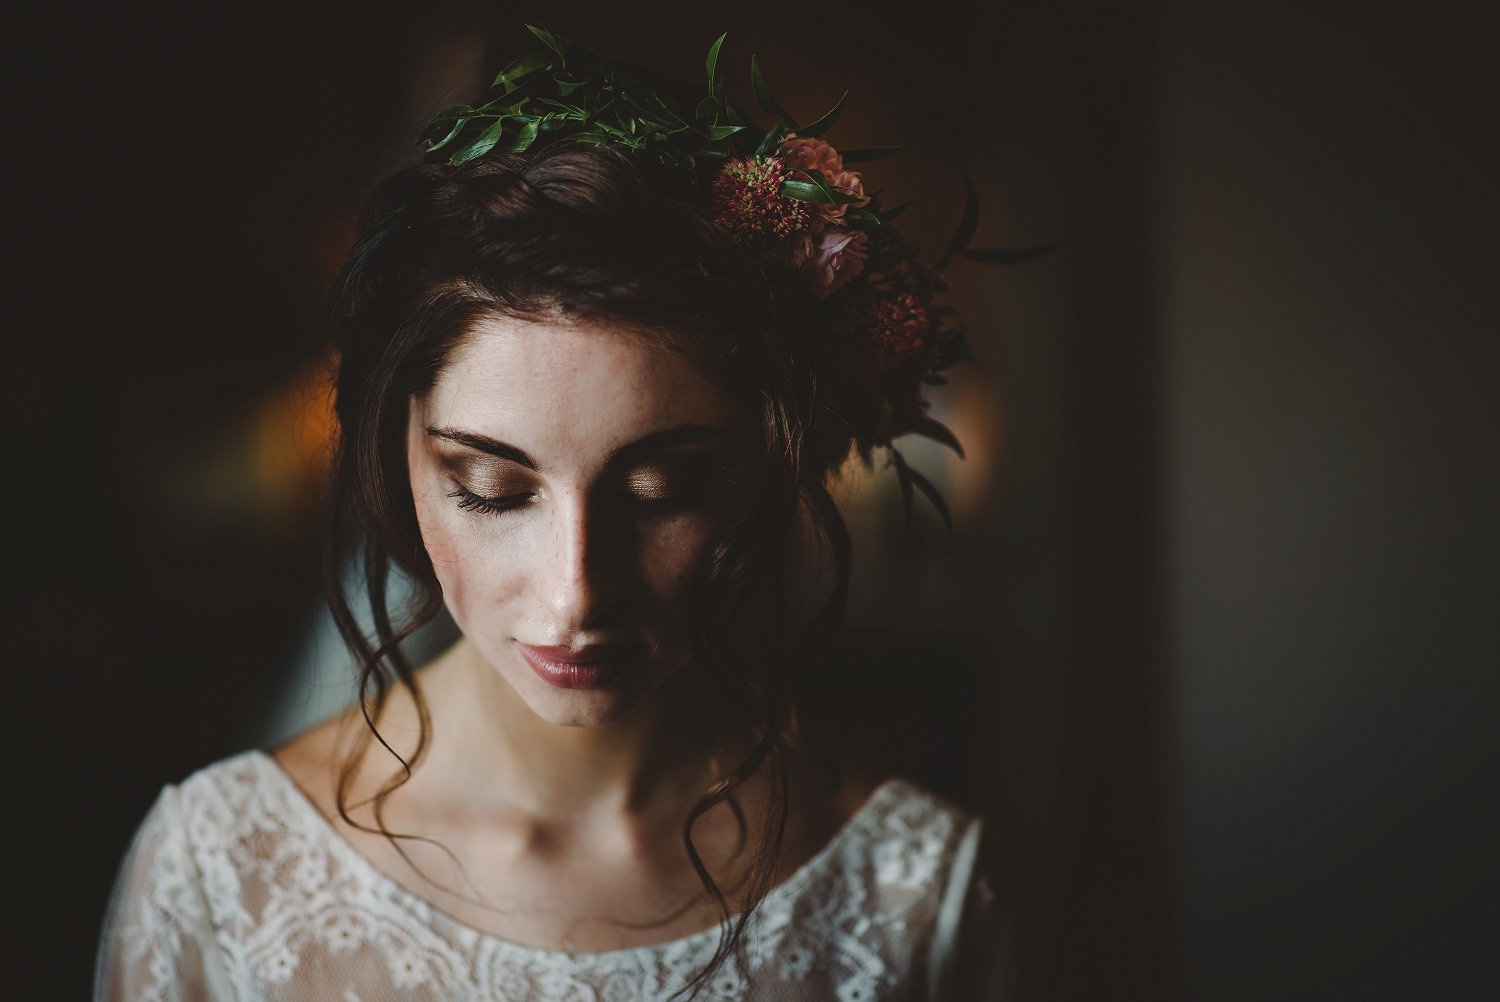 Curradine_bridal_Sept_17_amytiphoto_0033.jpg